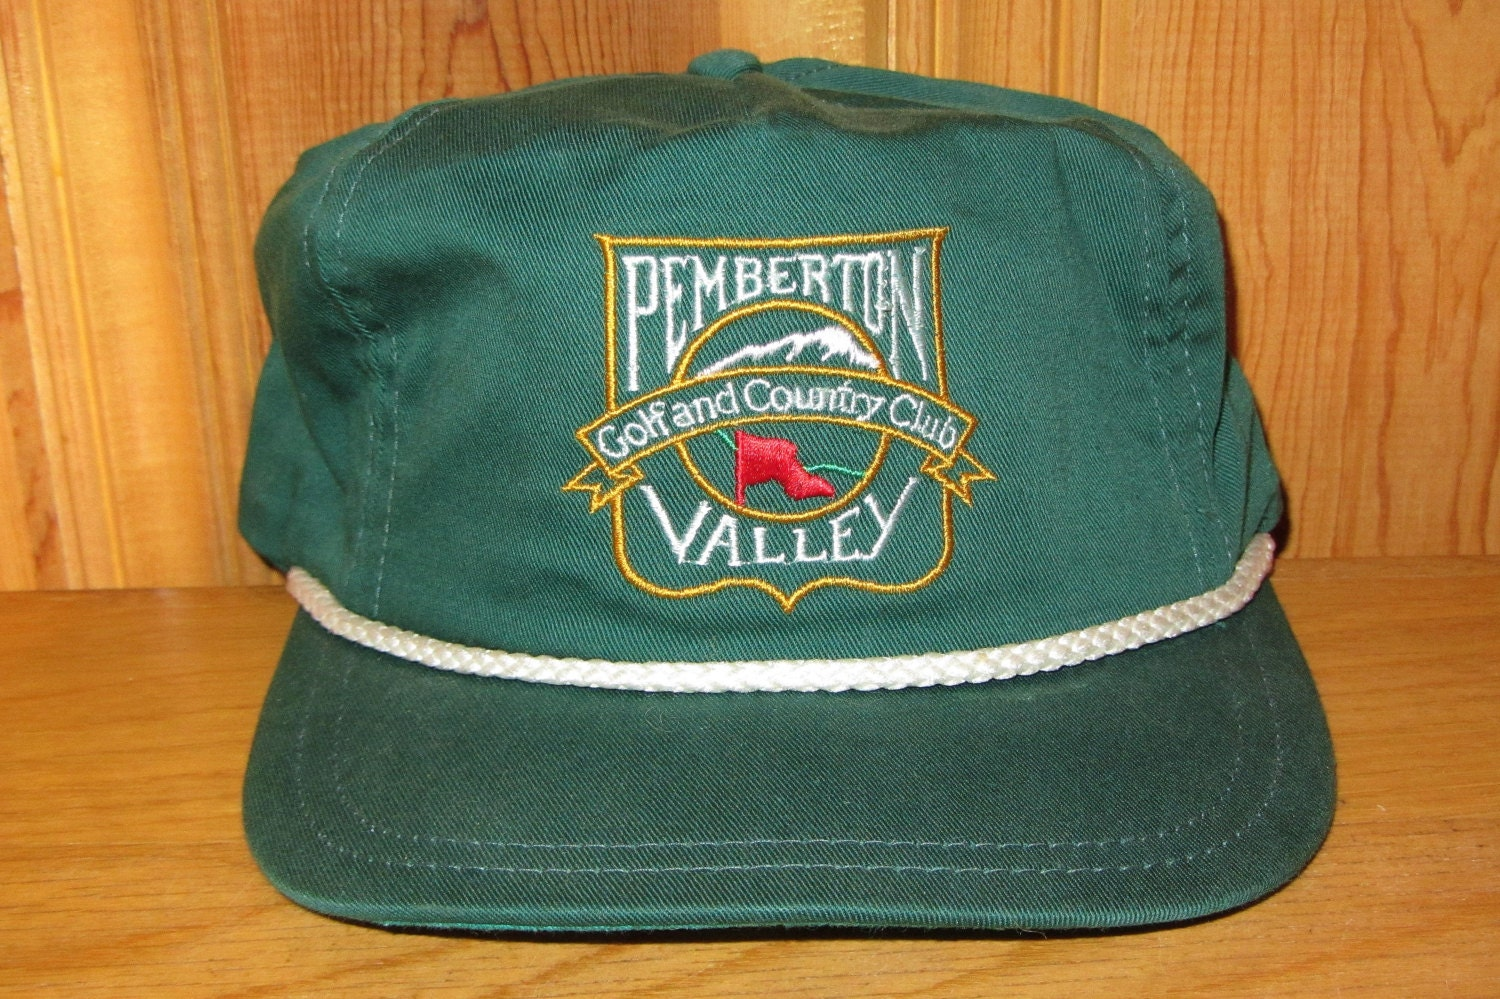 PEMBERTON VALLEY Golf and Country Club Vintage Forest Green Strapback Hat  Rope Lined Golfing Miller Golf Printing Cap Course by Whistler BC 7c0affd20535